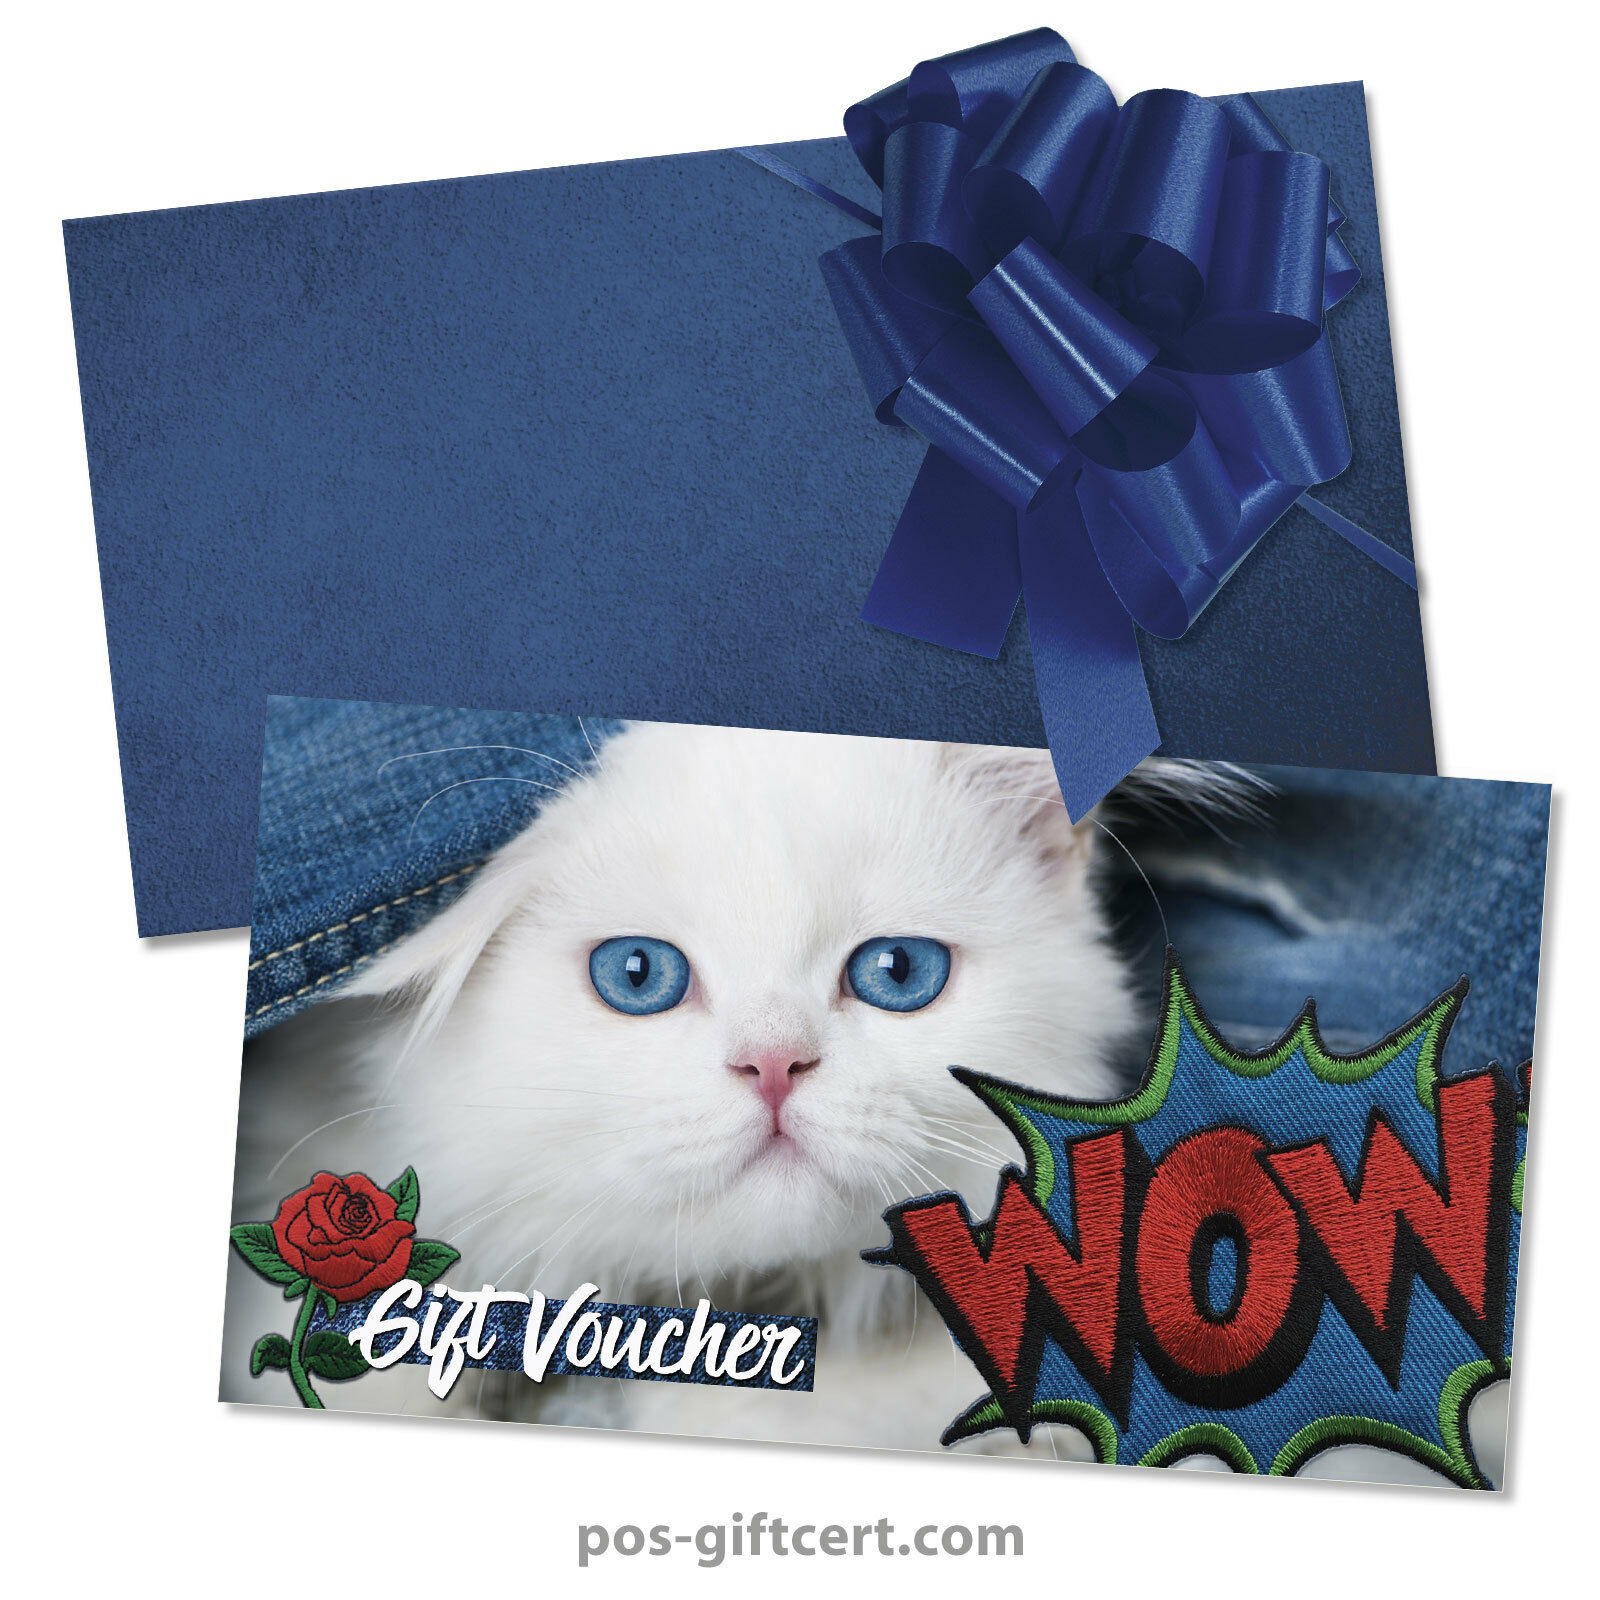 Gift vouchers  envelopes  pull bows for fashion boutique jeans FA1261GB | Große Auswahl  | Quality First